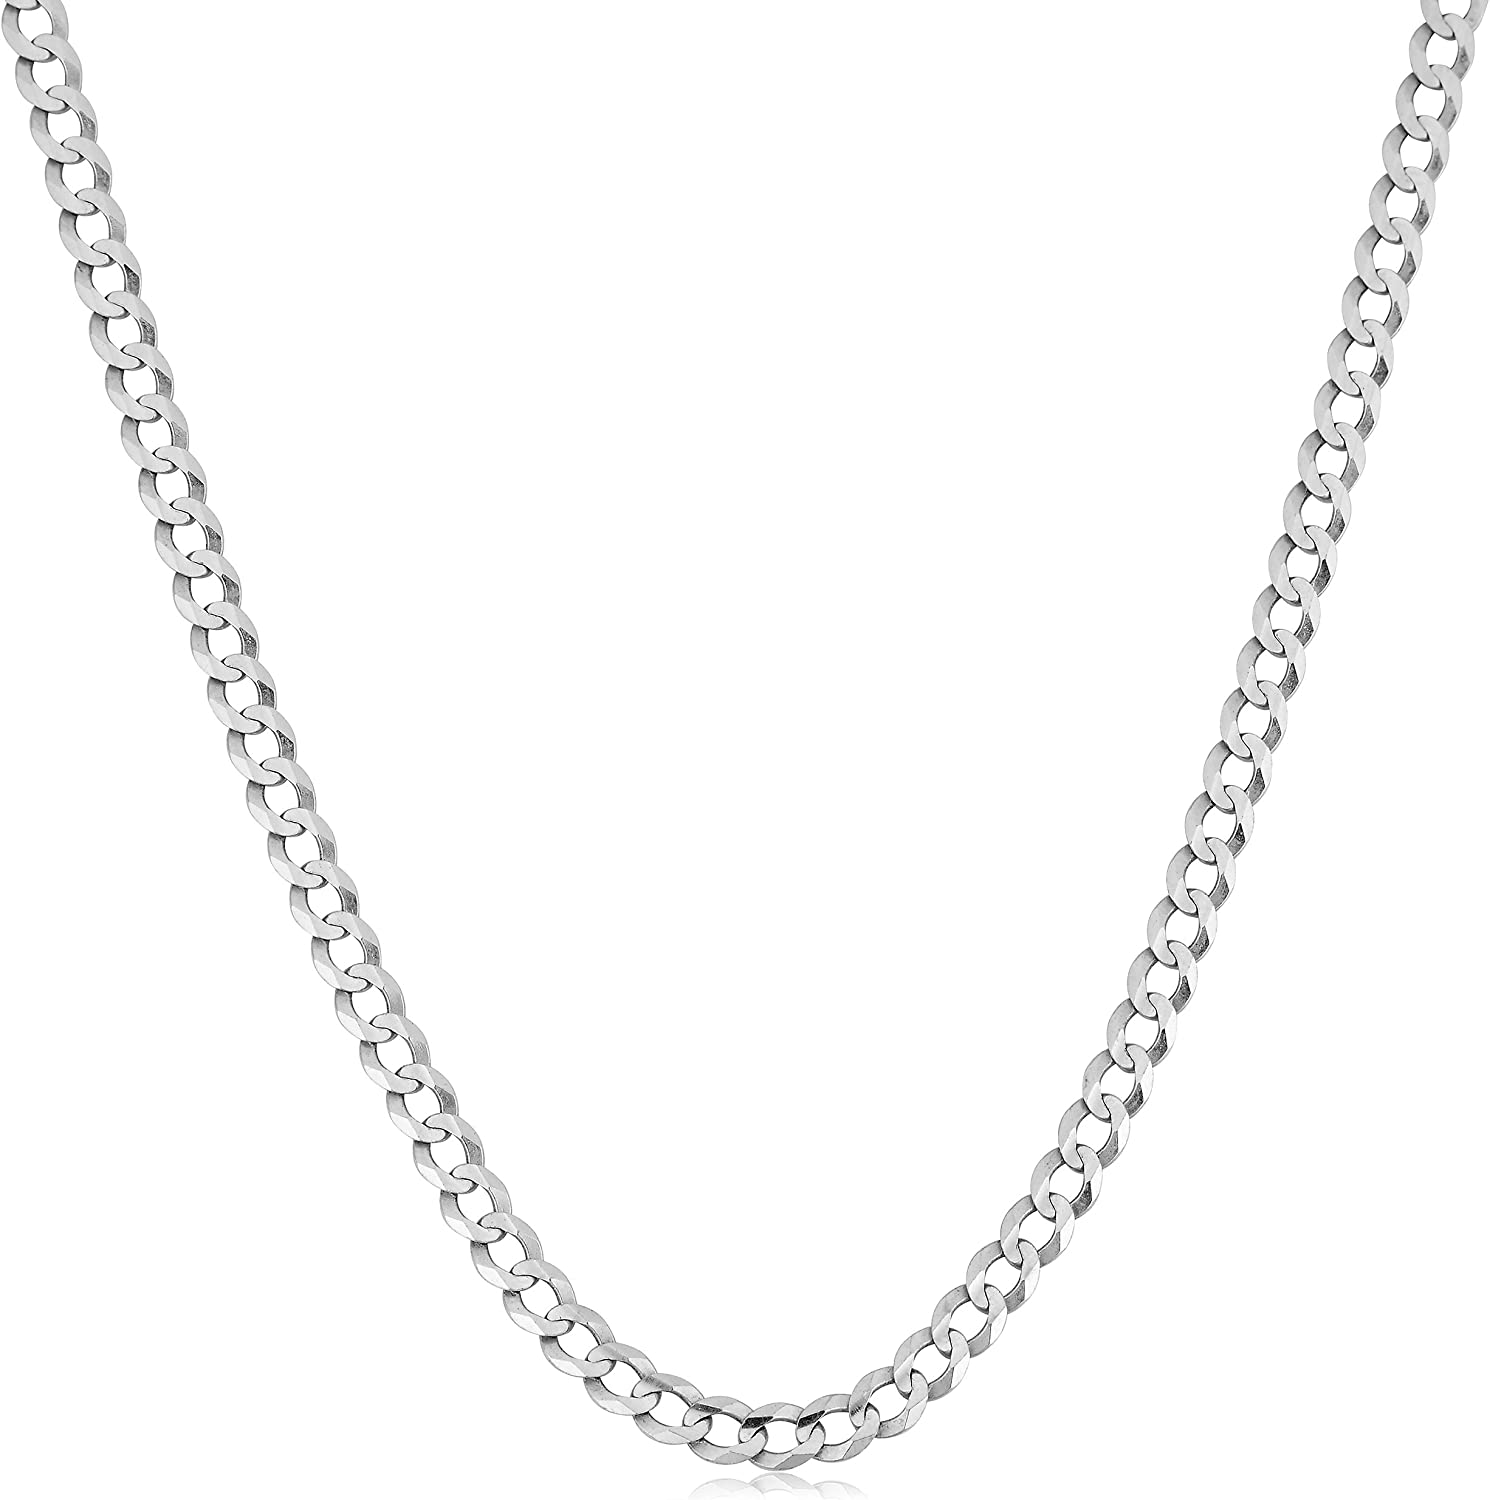 0.6 grams Ladies 14K White Gold Carded Curb Chain Necklace 24 inches